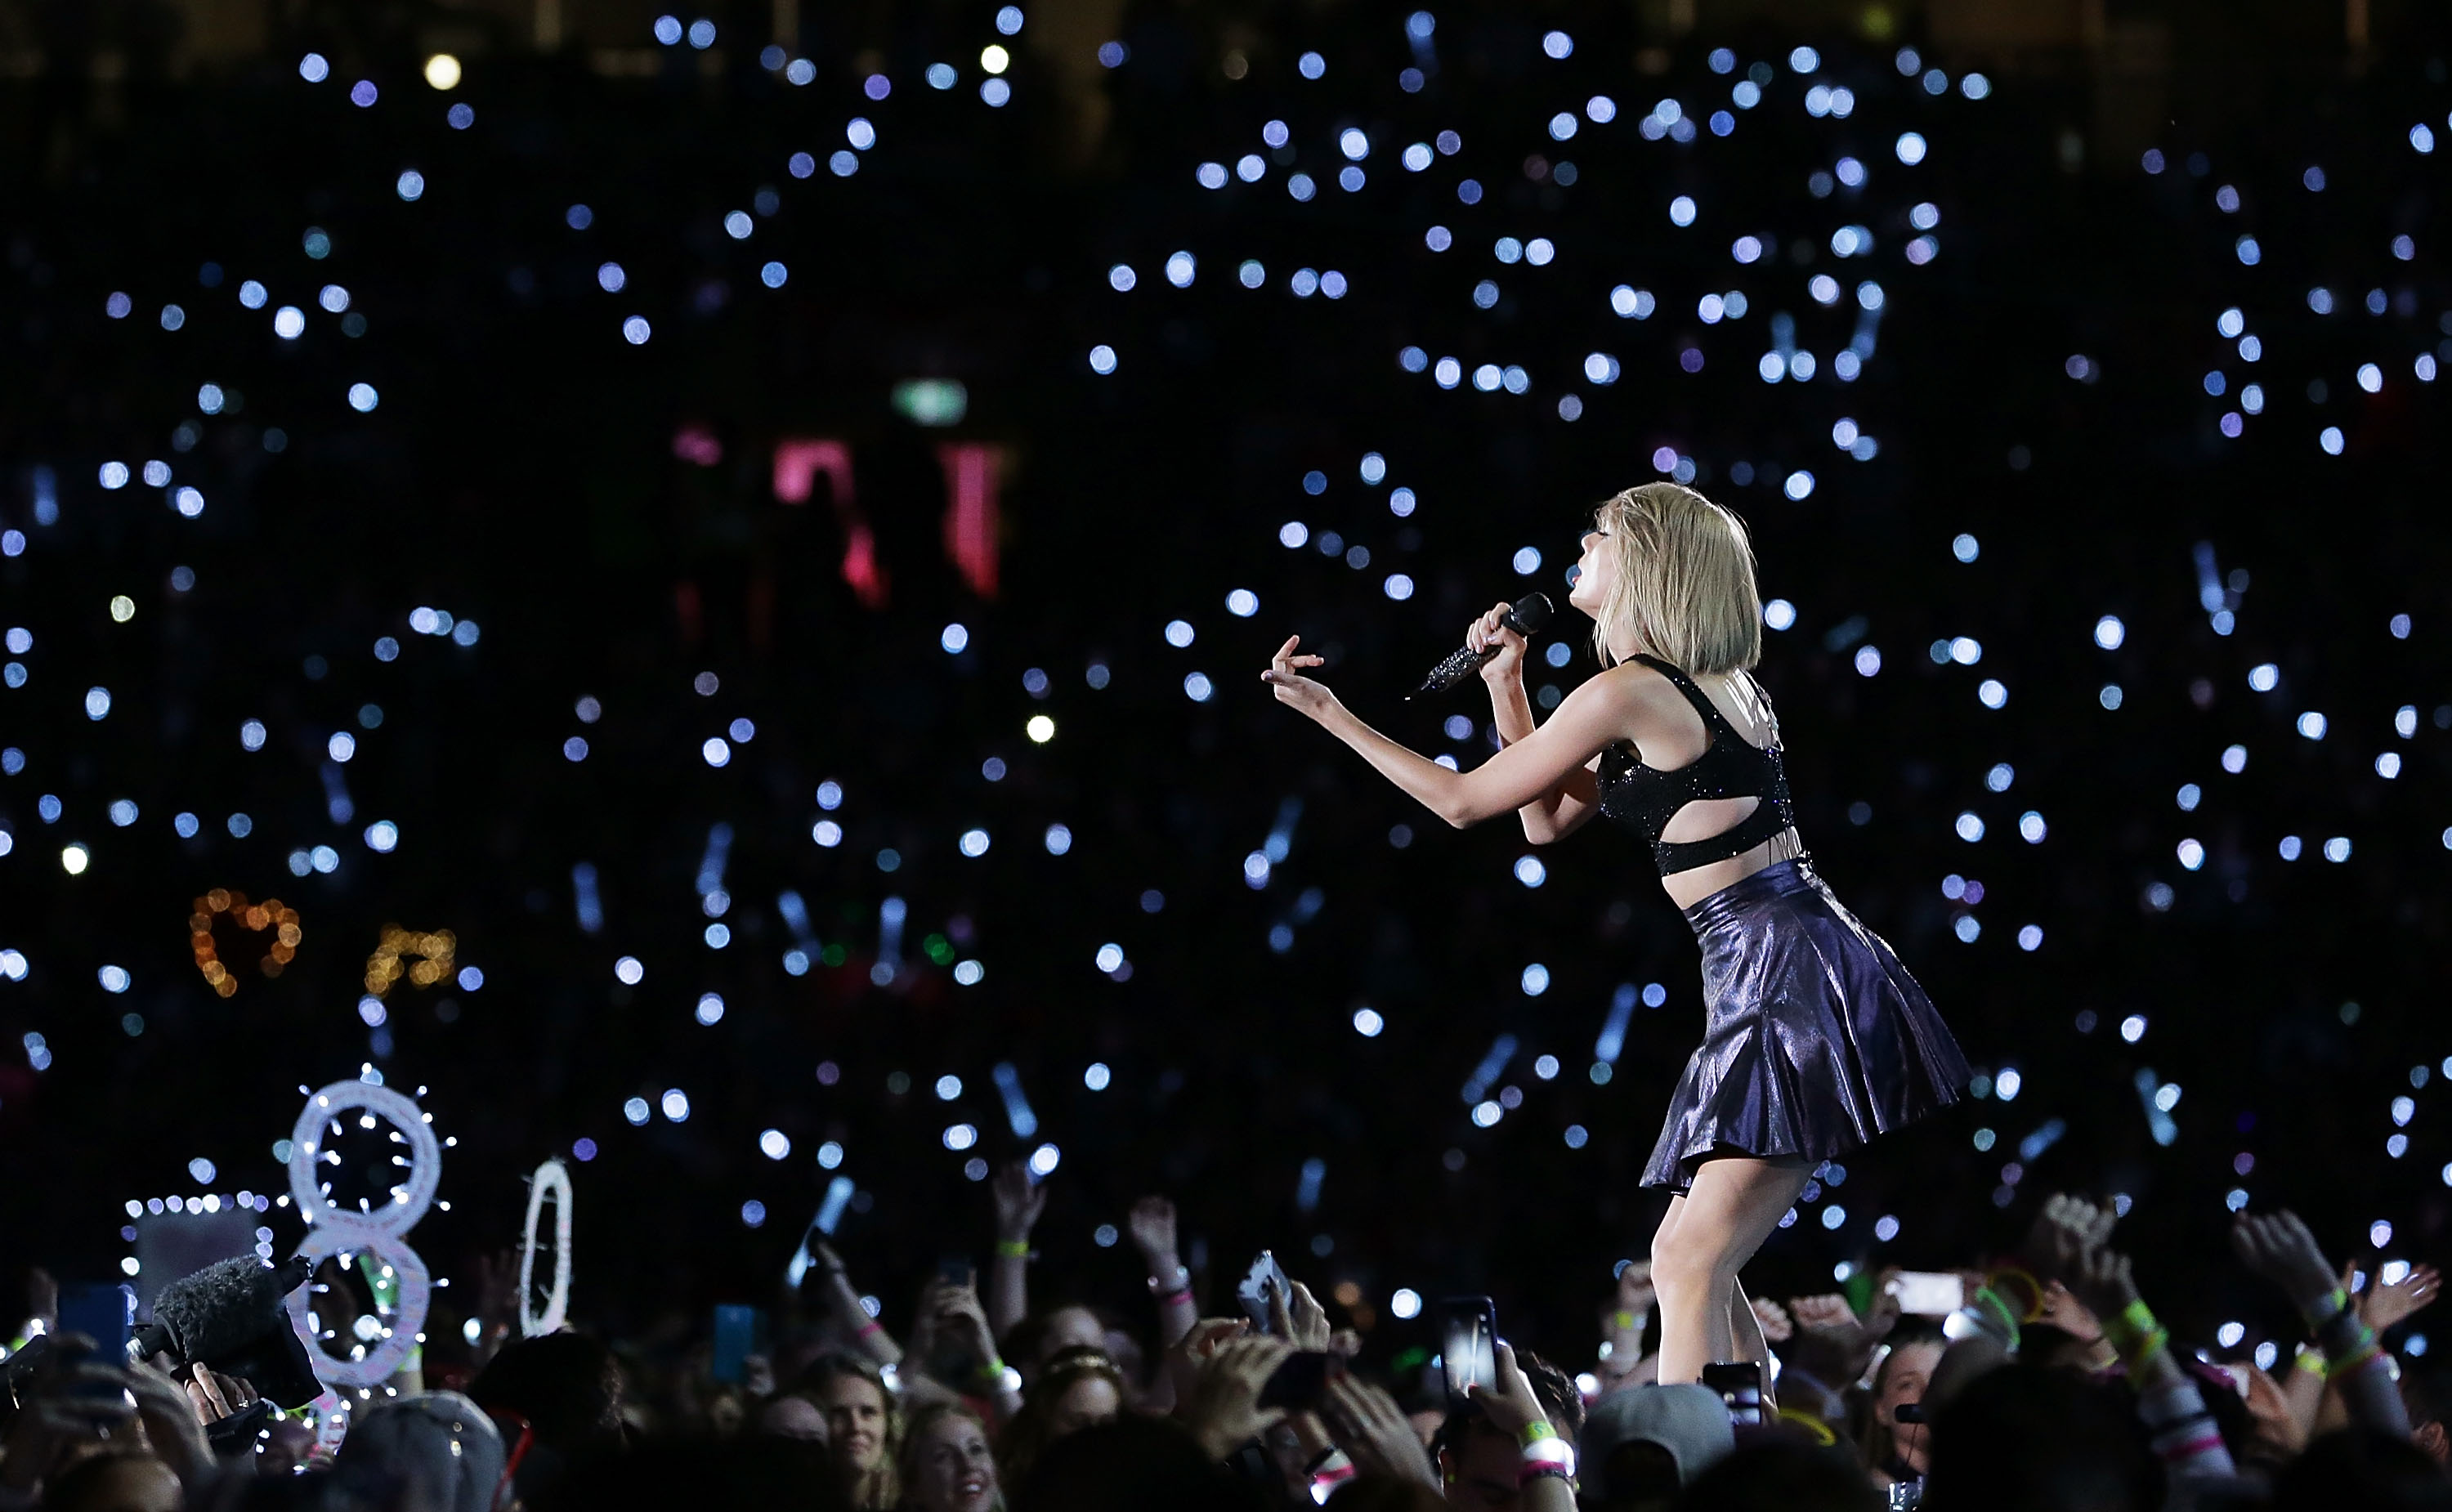 Taylor Swift '1989' World Tour - Sydney